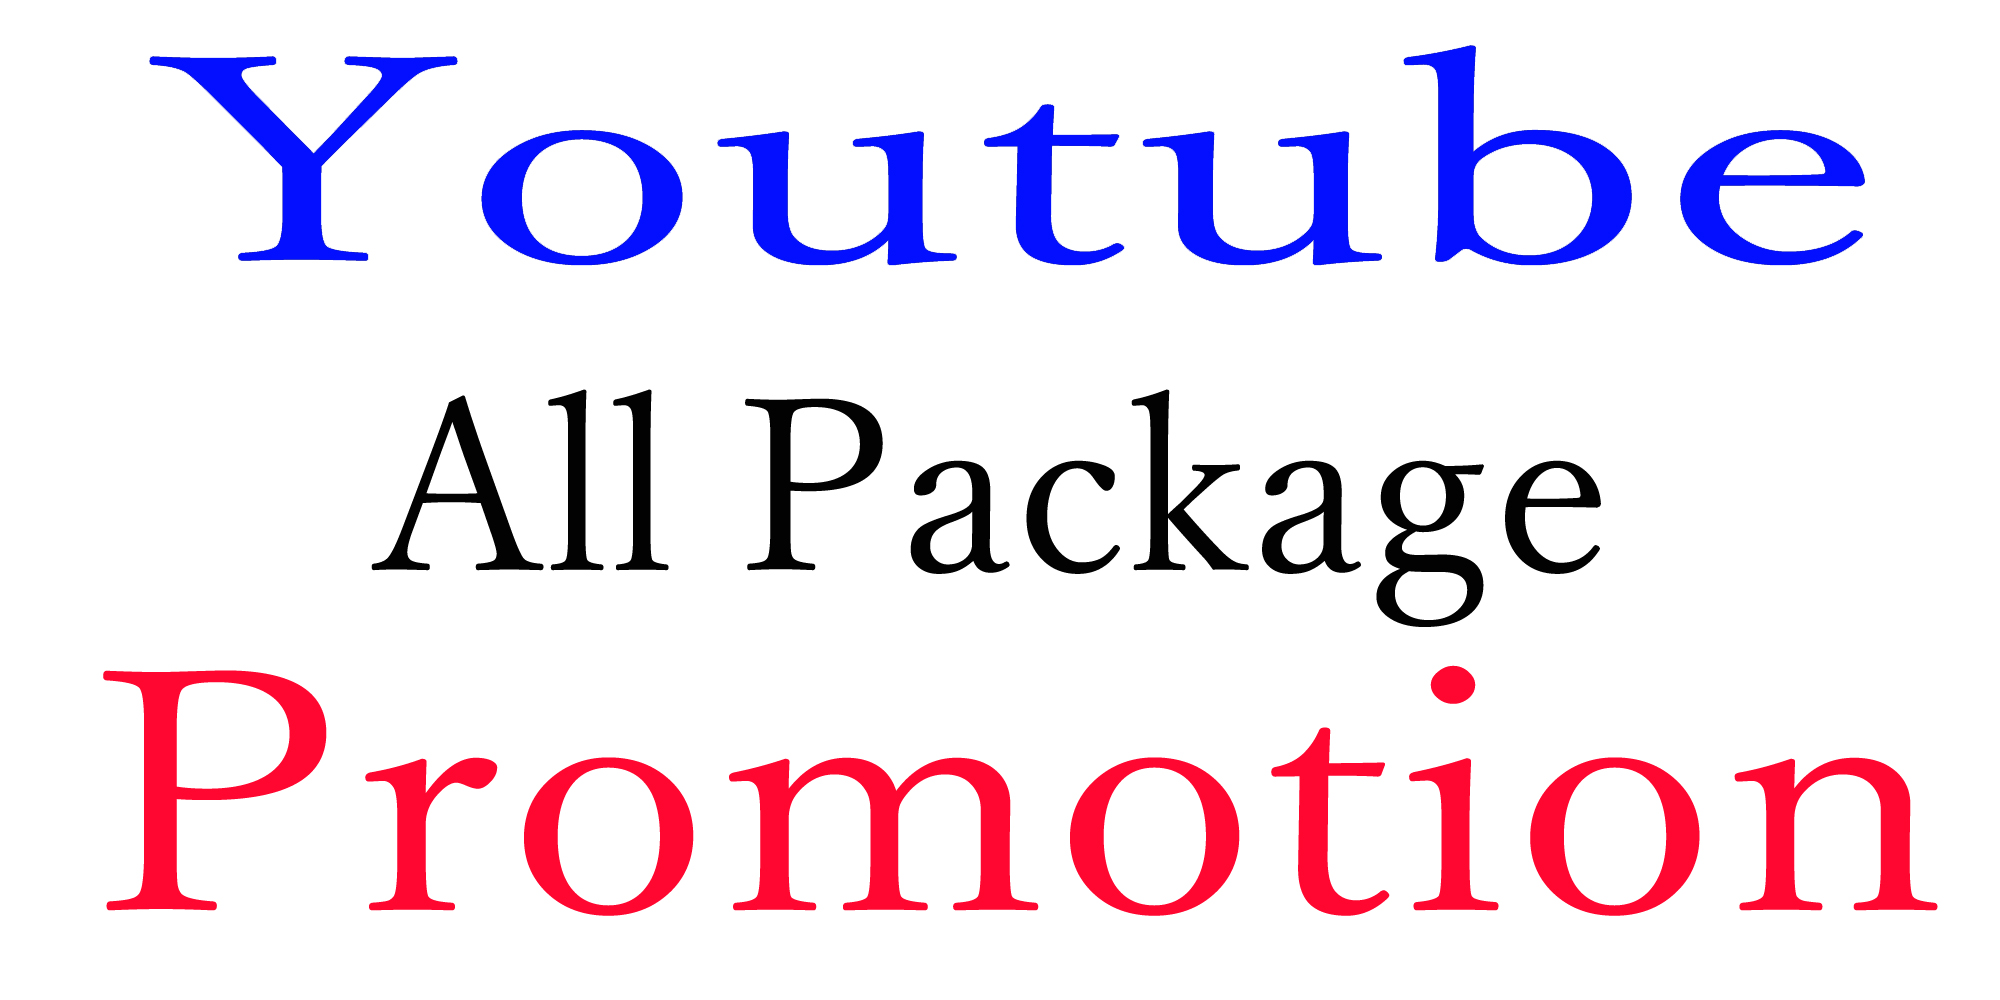 Instant YouTube Video Package Promotion All In One and marketing